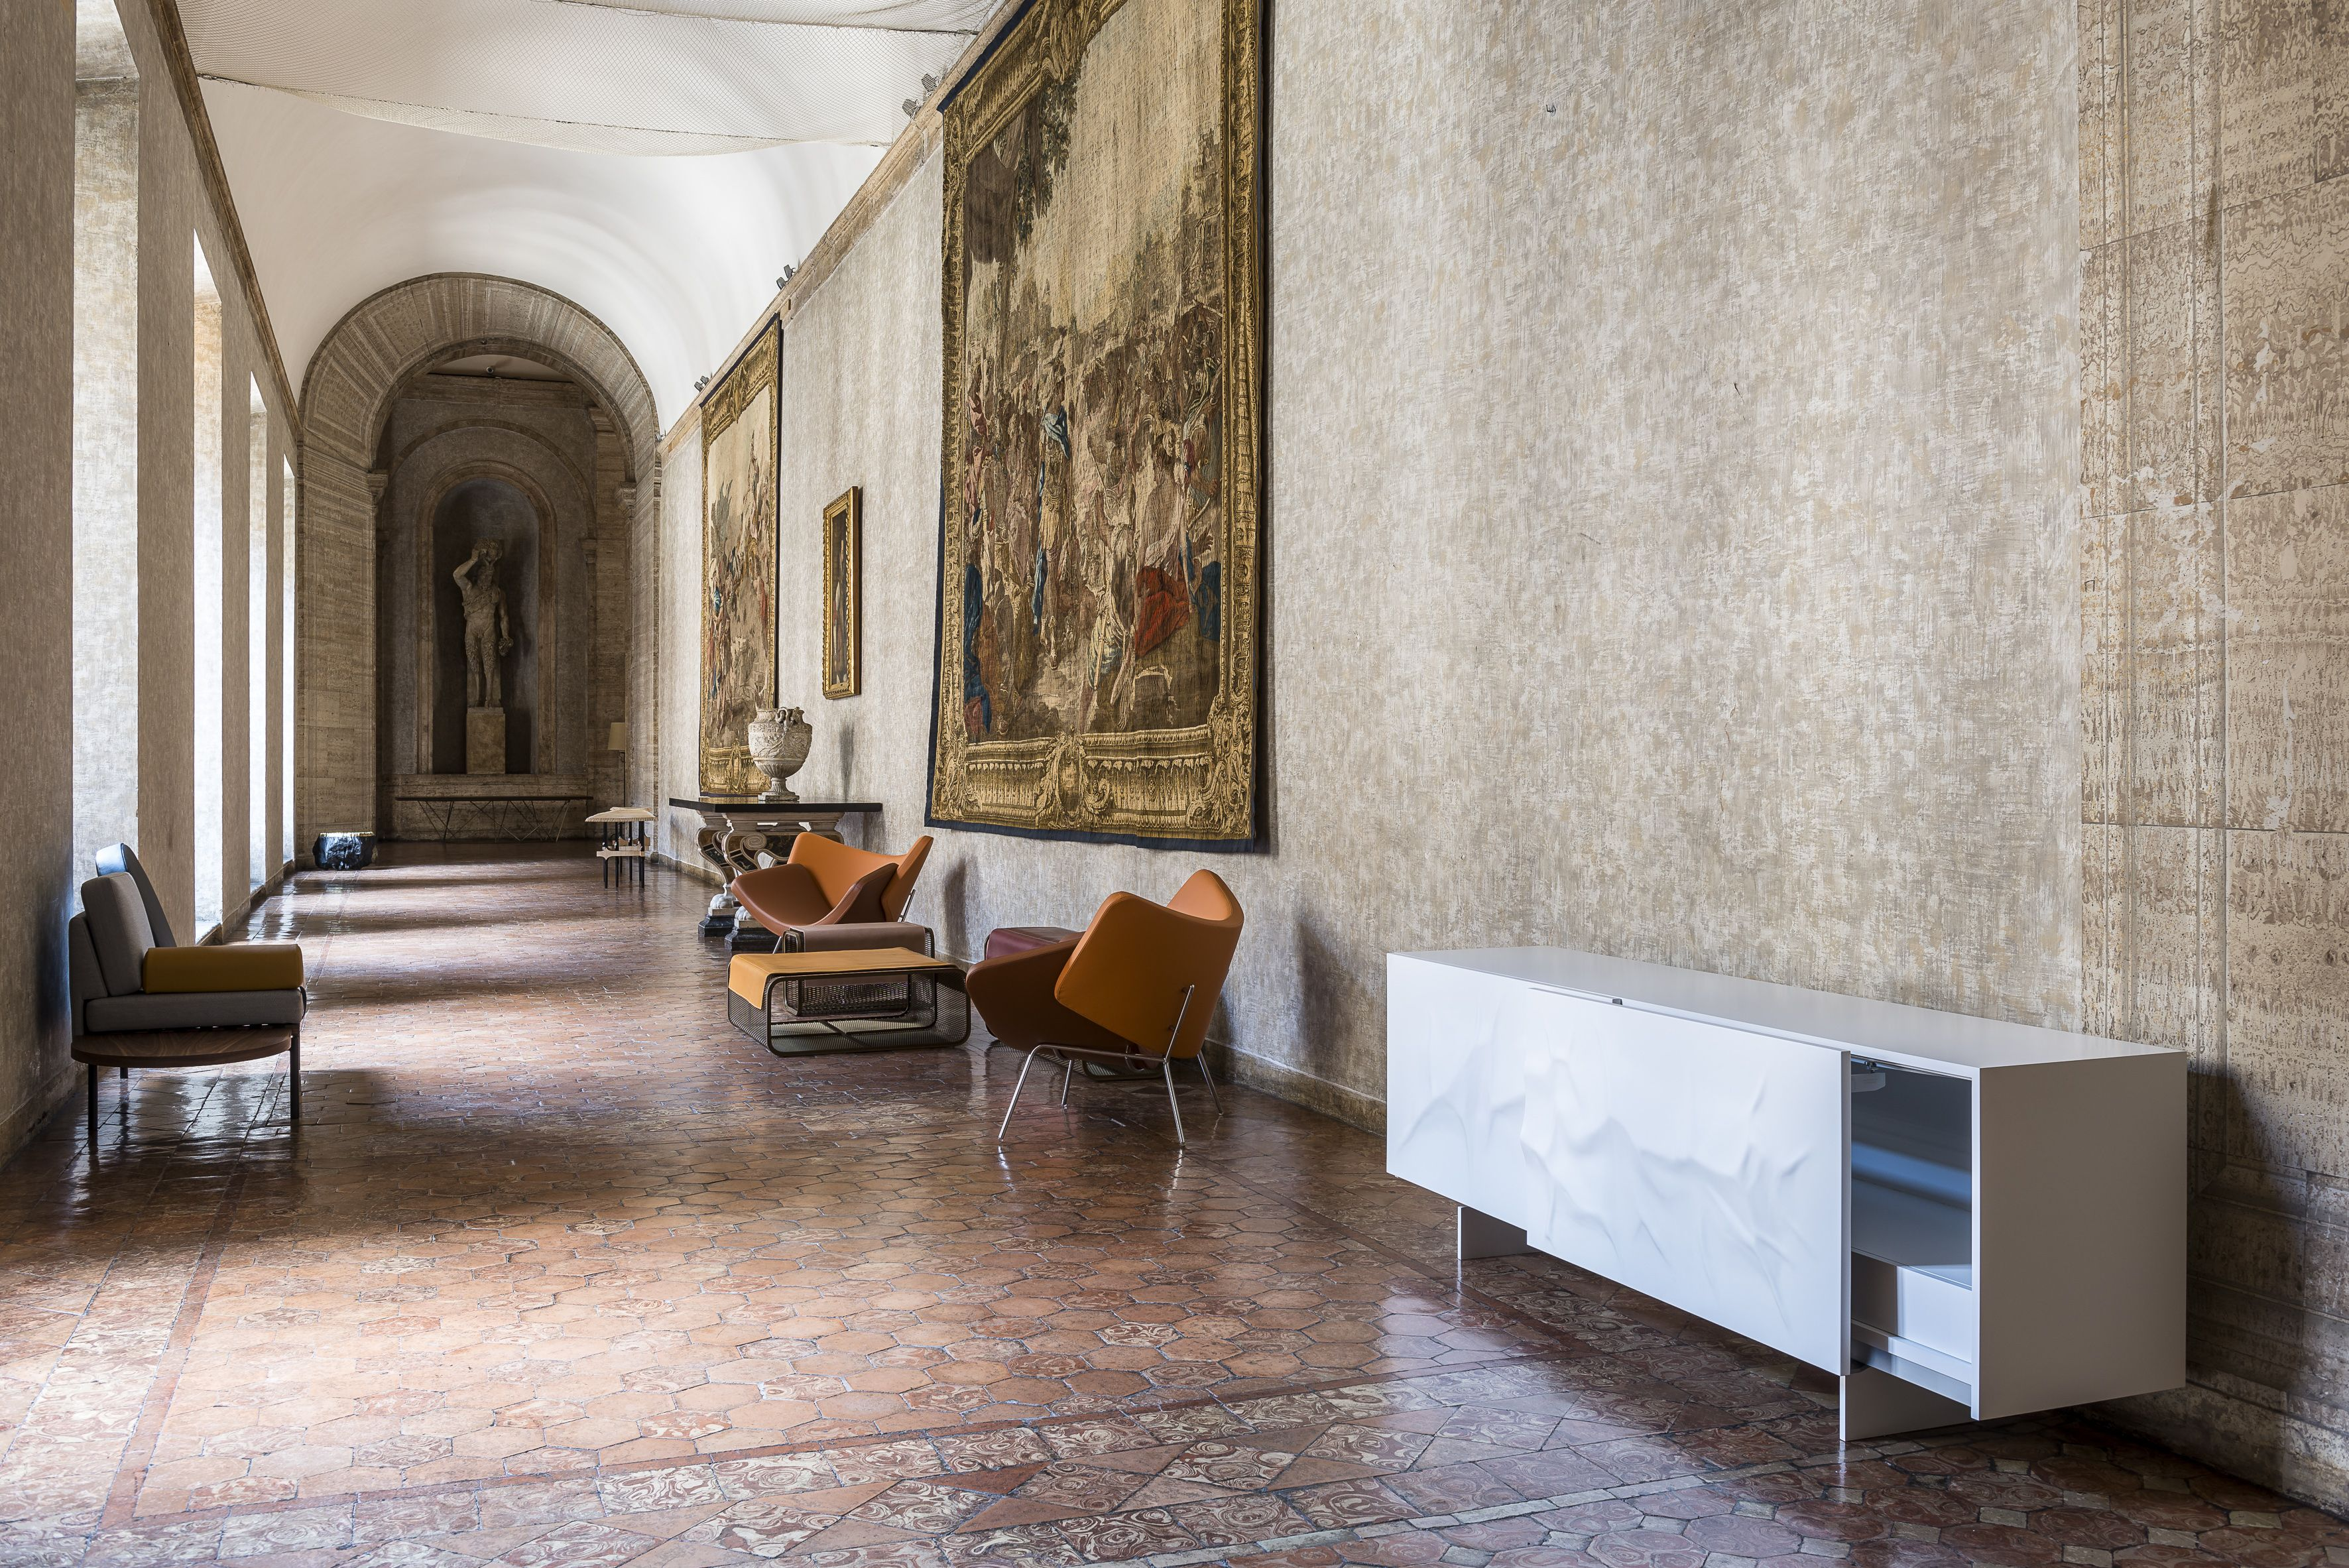 Roche Bobois | Design@Farnese | Exhibition at the Palazzo Farnese in ...